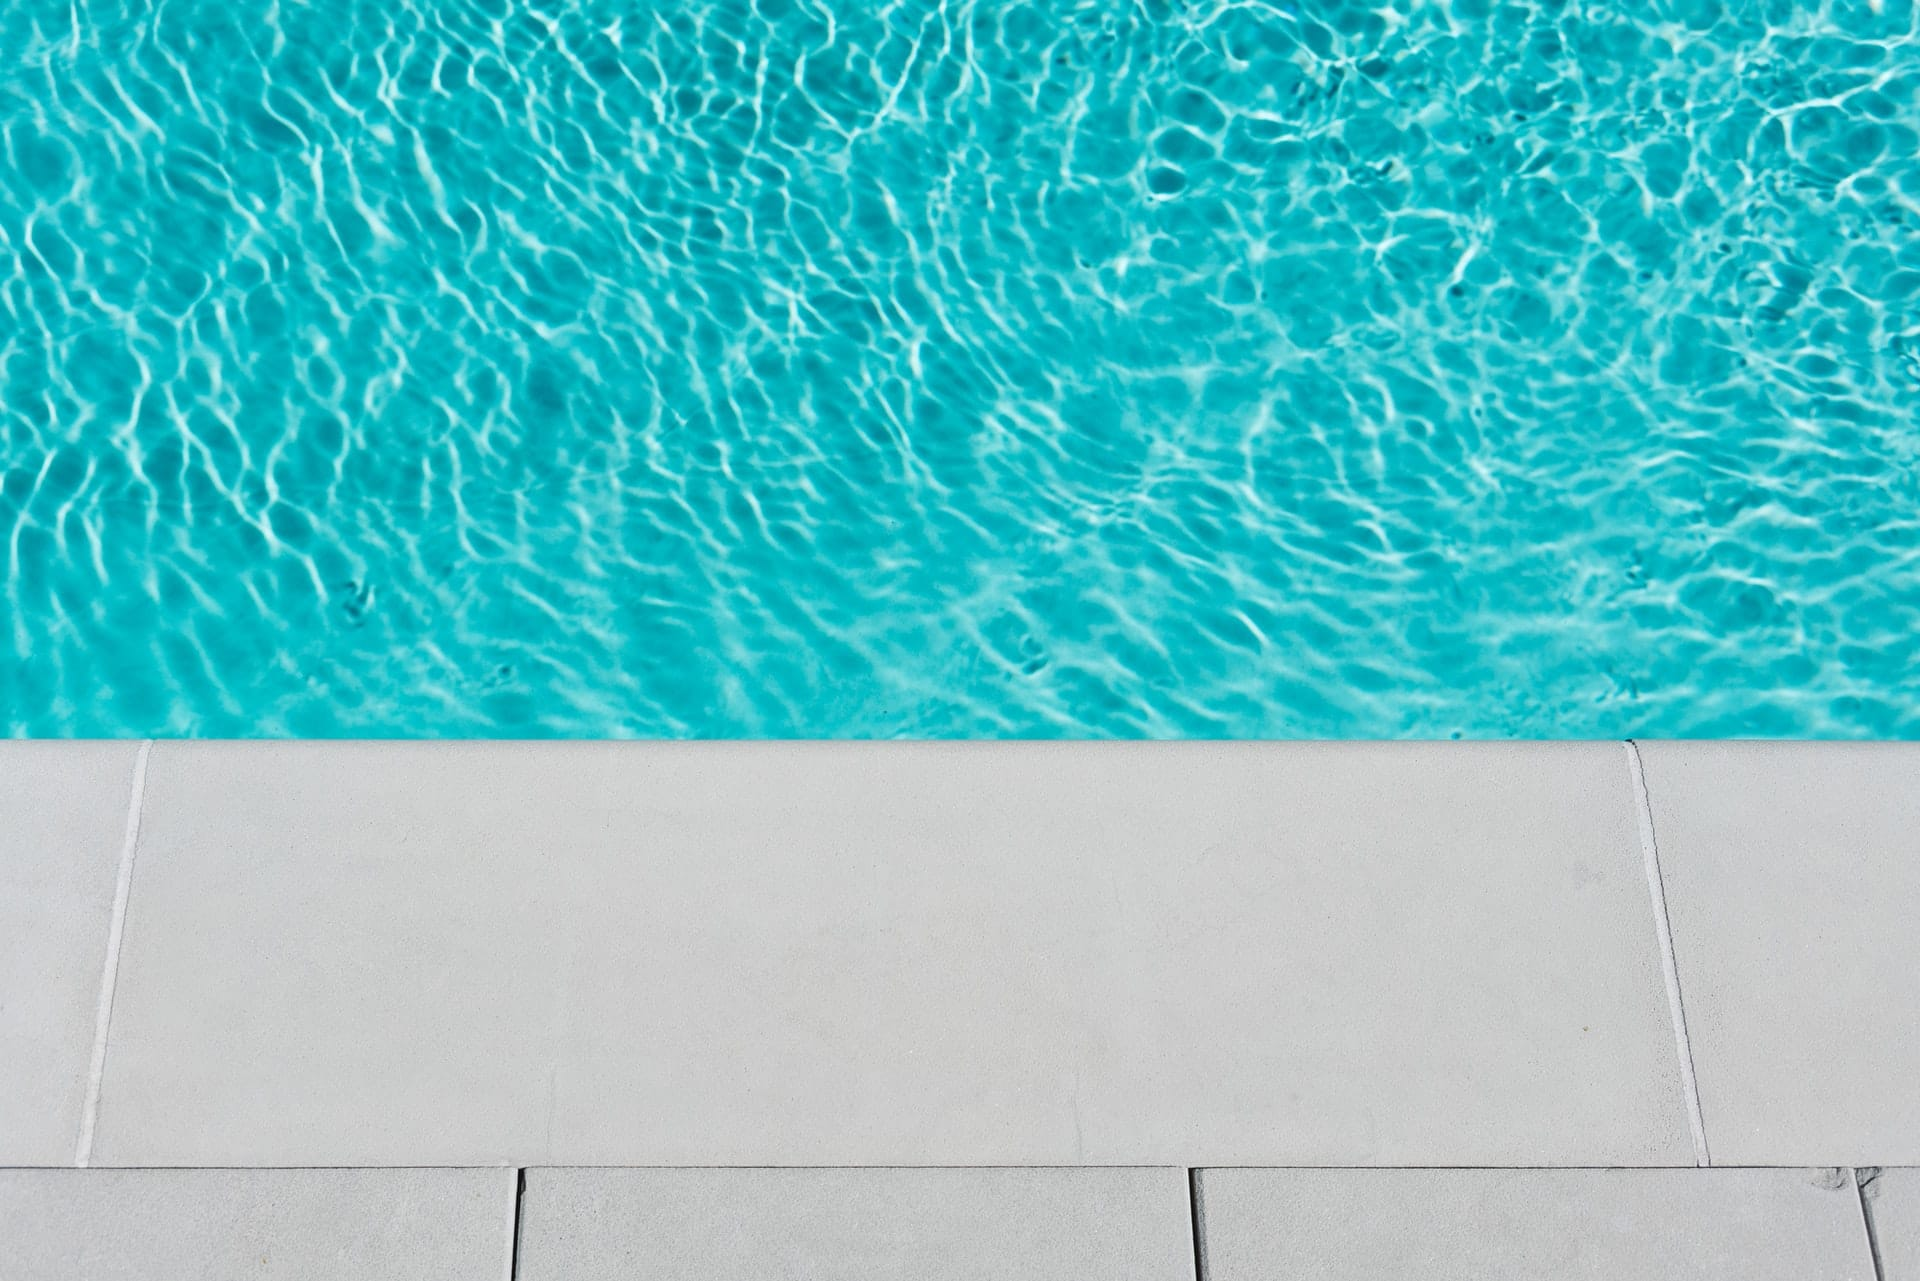 pool spa inspection charlotte nc